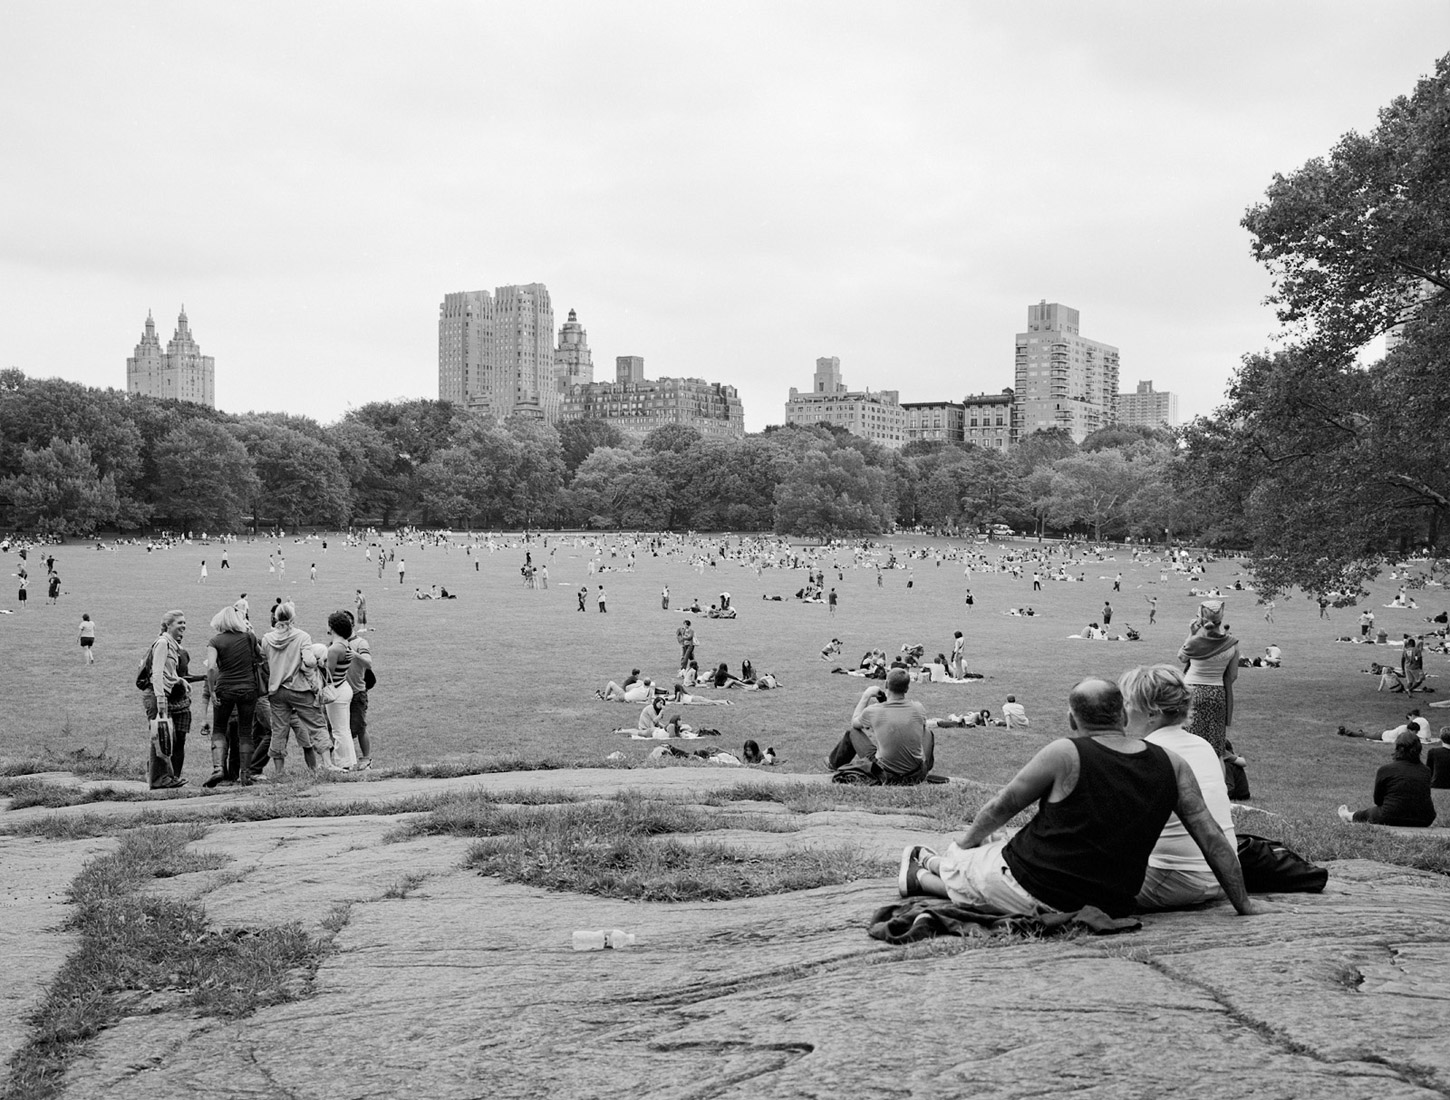 Central Park: Photographs by Lauren Henkin